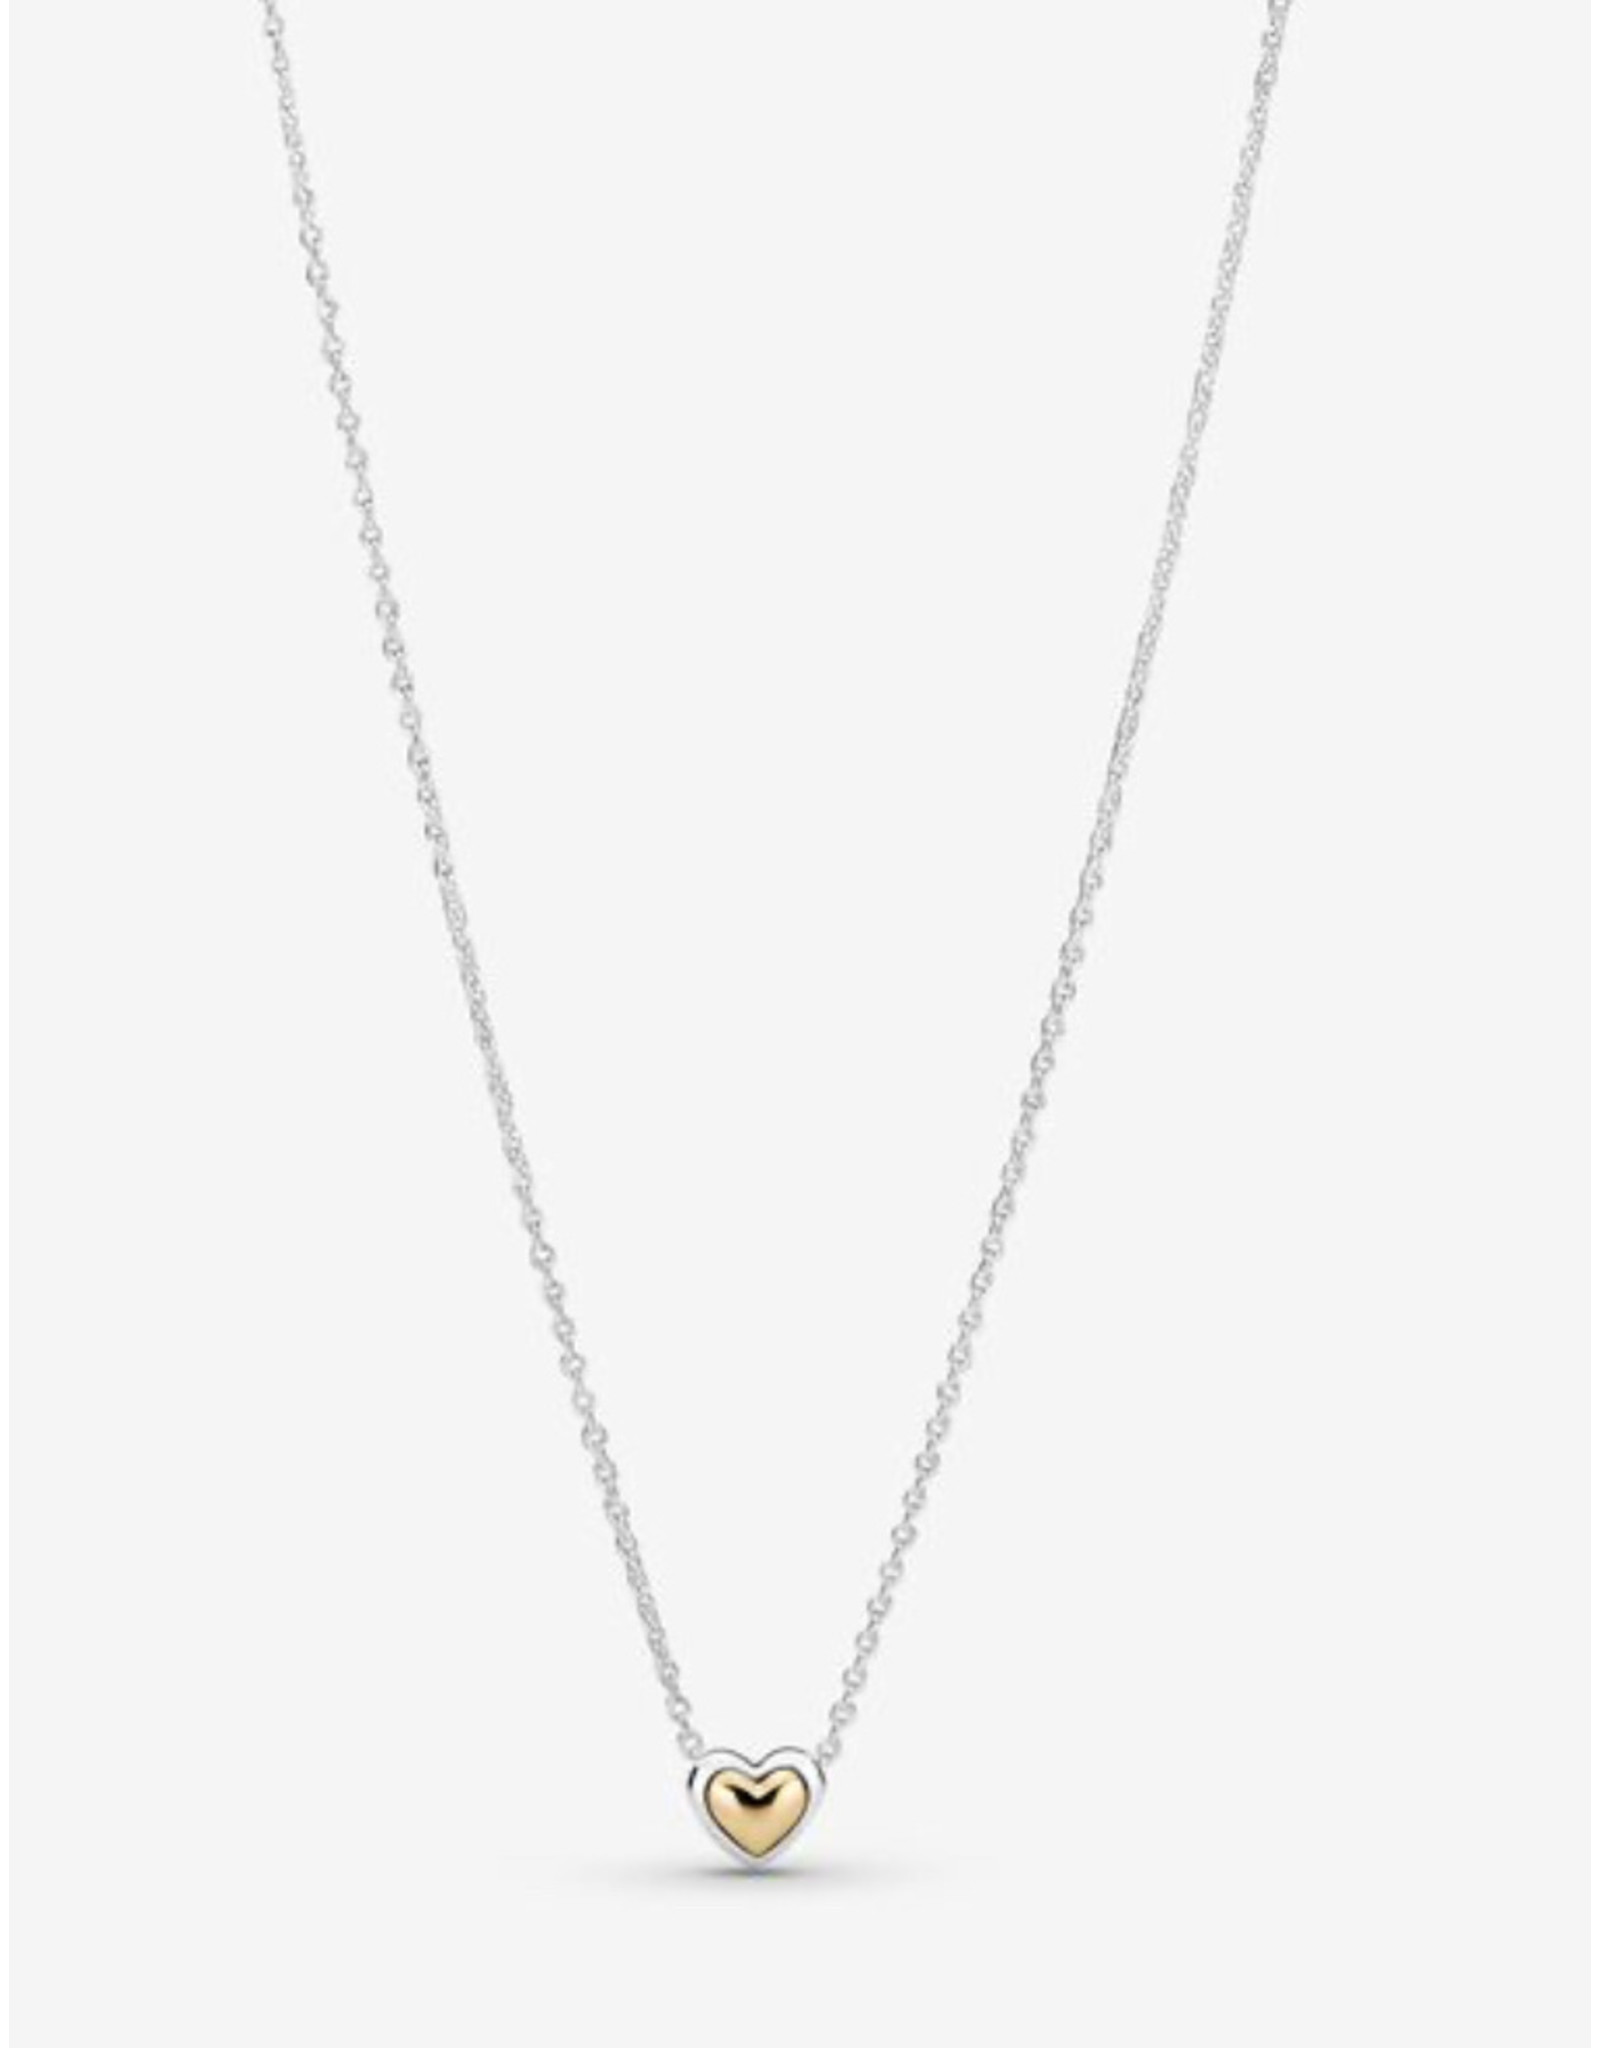 Pandora Pandora Necklace,399399C00-45, Domed Golden Heart Collier Necklace, With 14K Gold